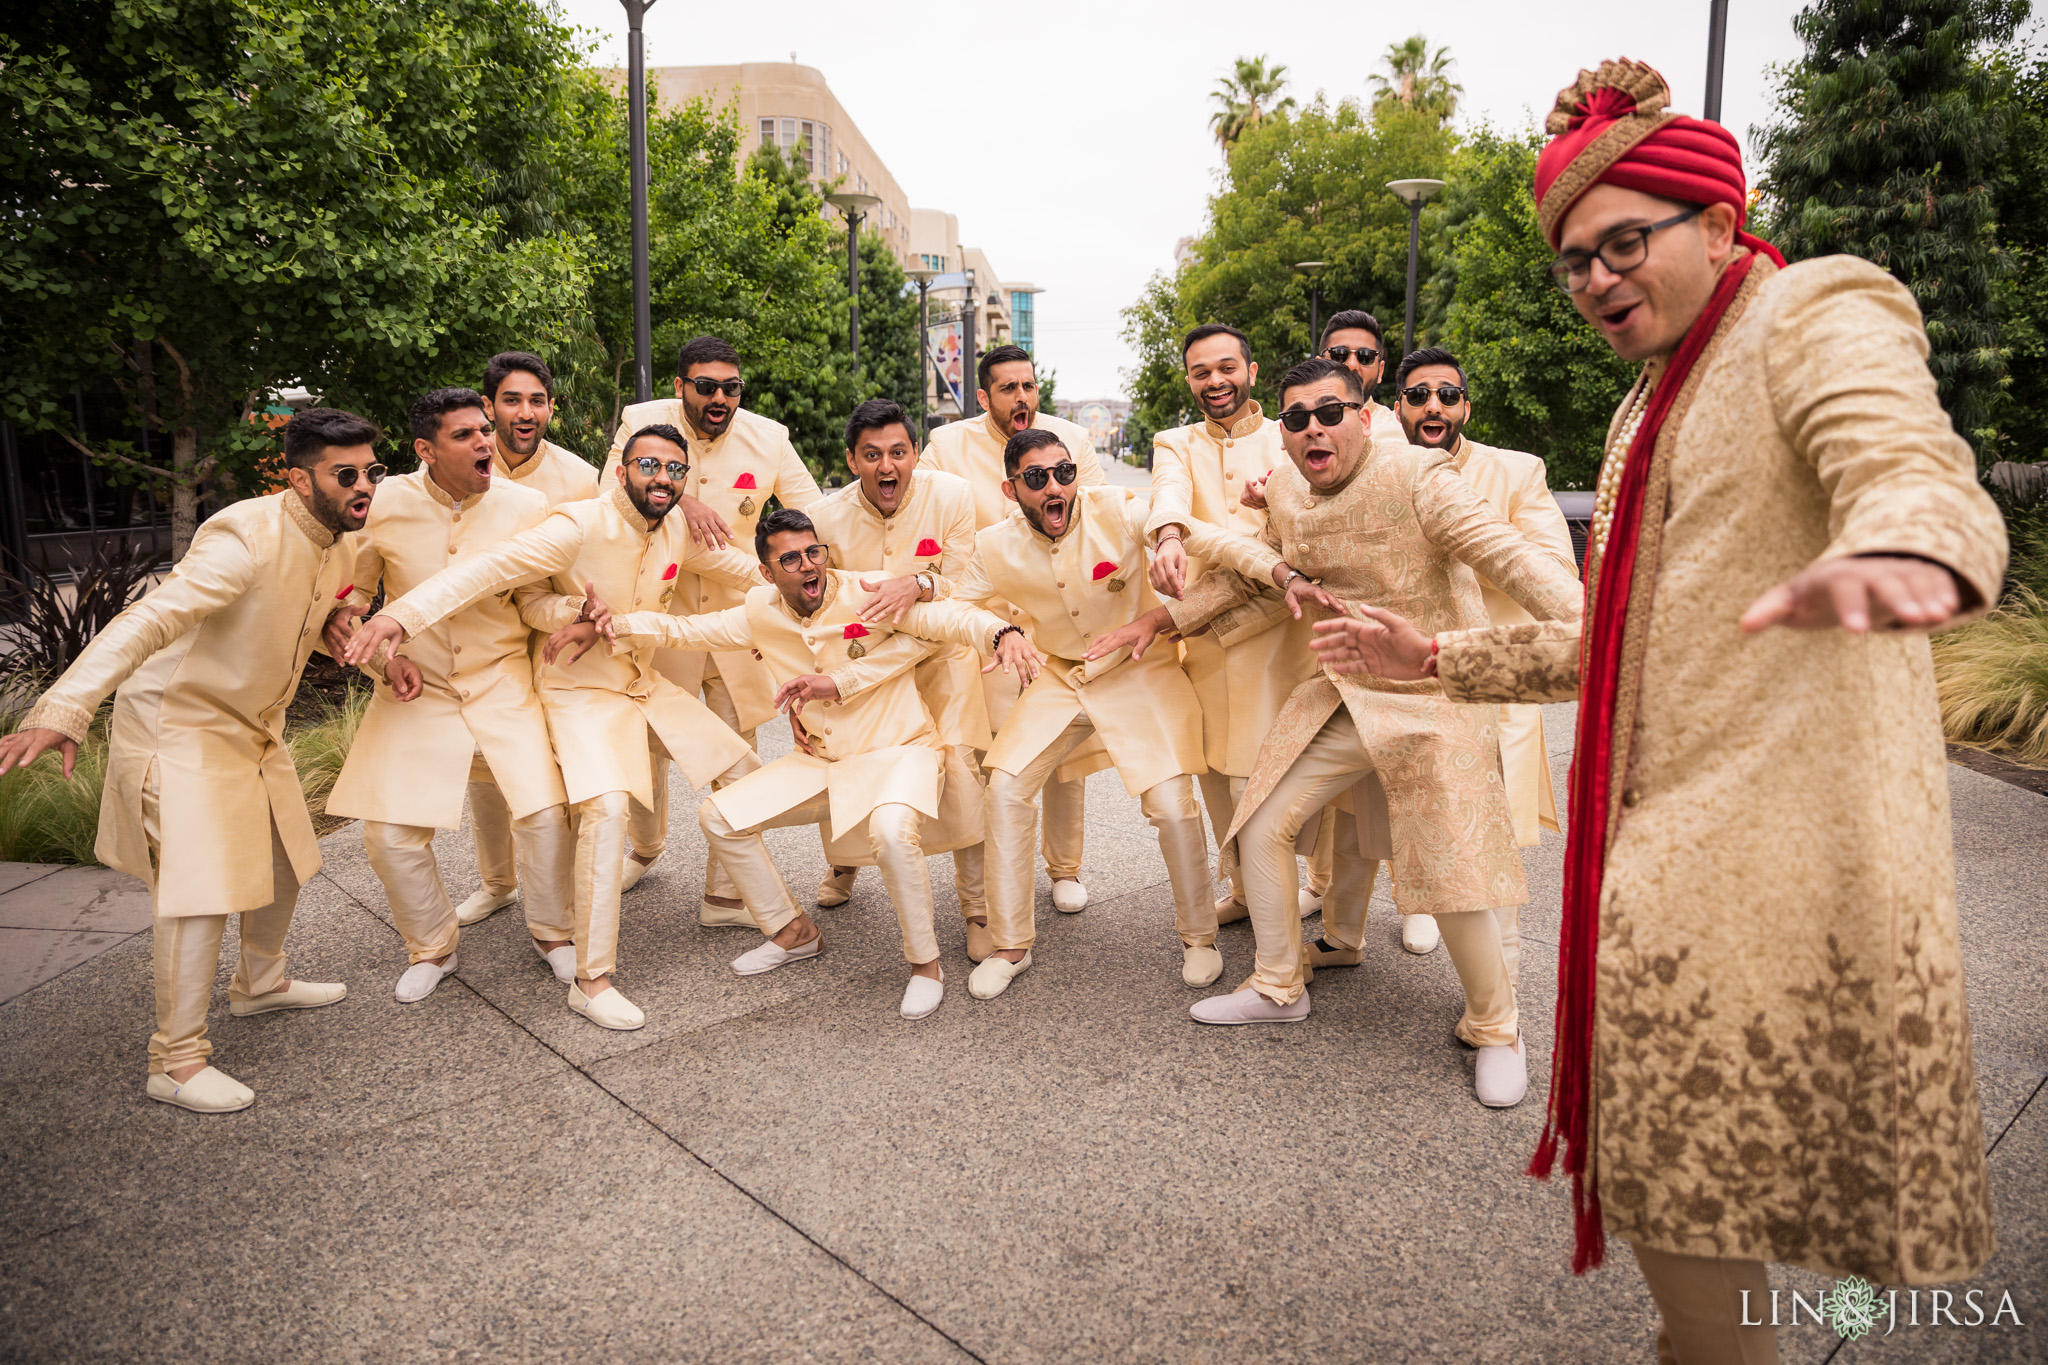 016 Long Beach Performing Arts Center Indian Groomsmen Wedding Photography